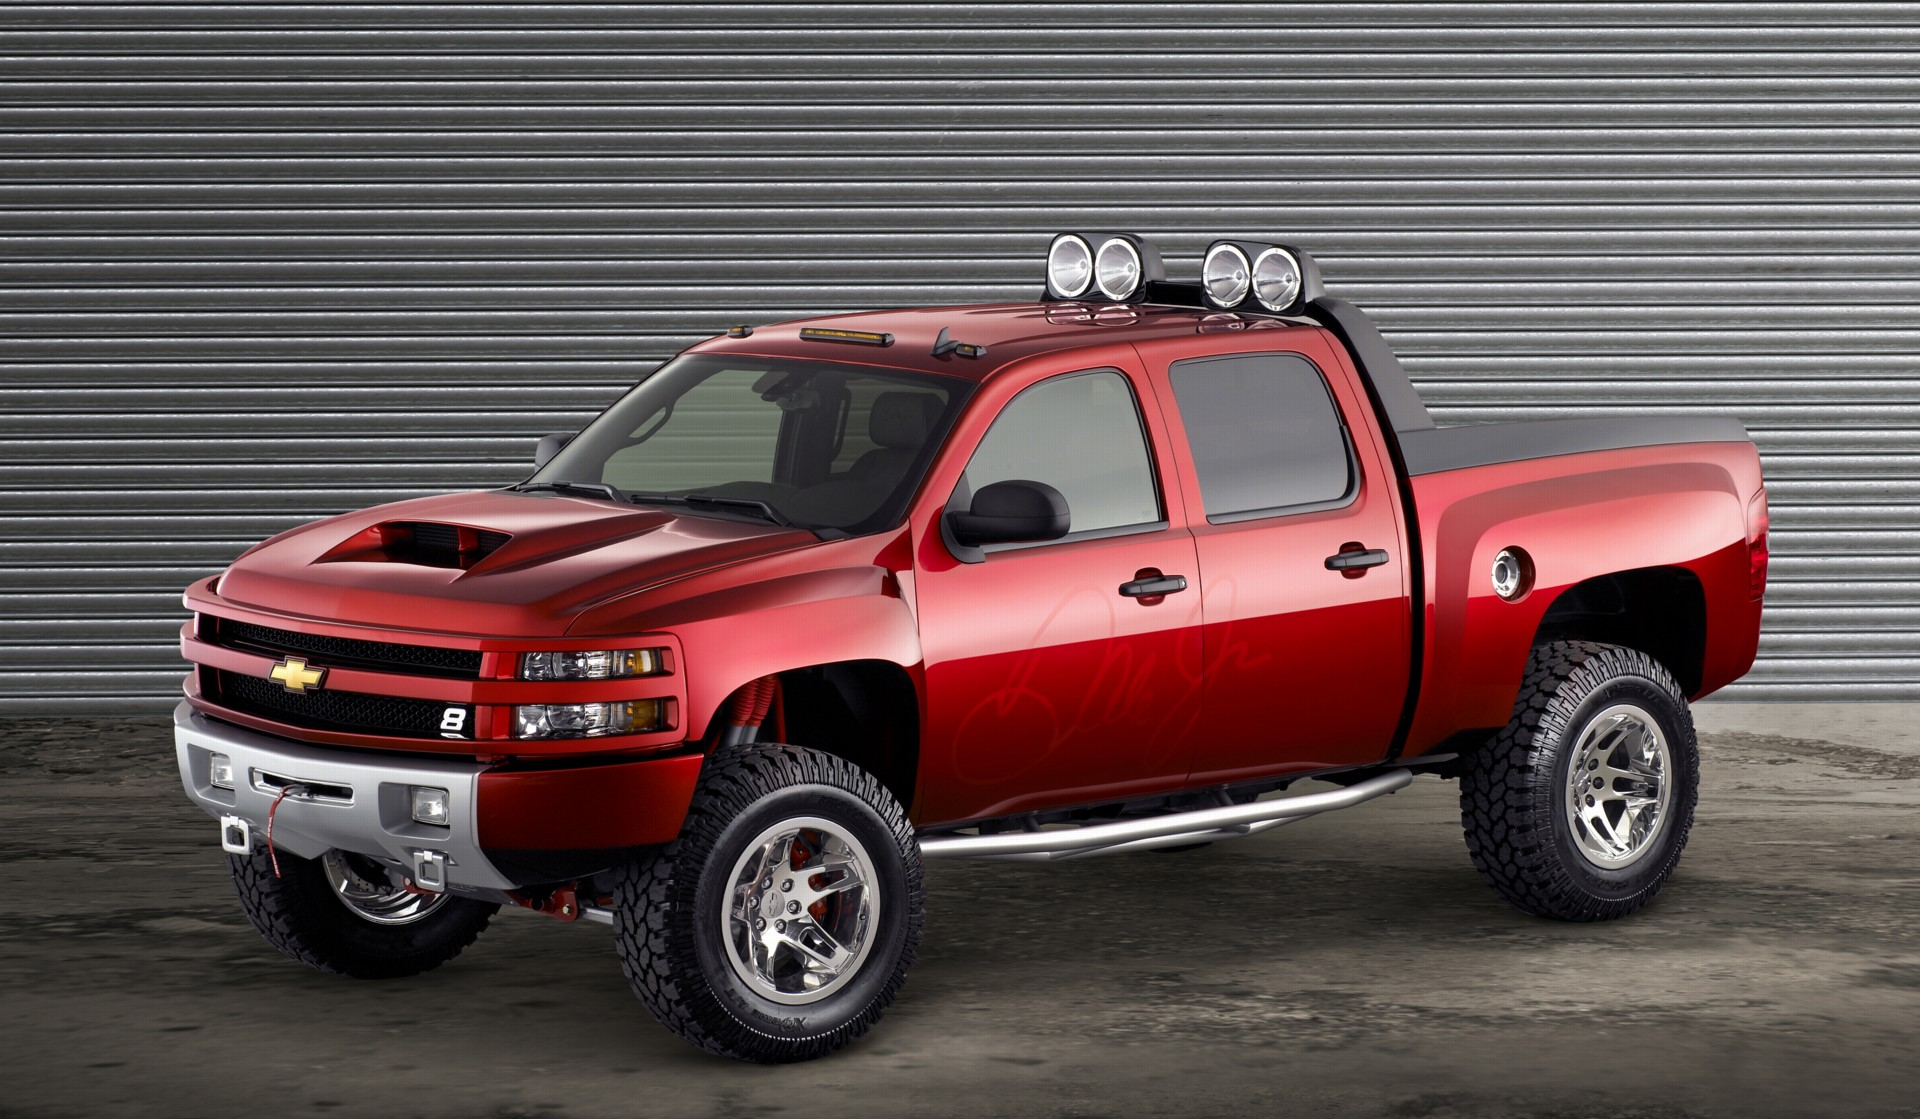 2006 Chevrolet Silverado Dale Earnhardt Jr Big Red